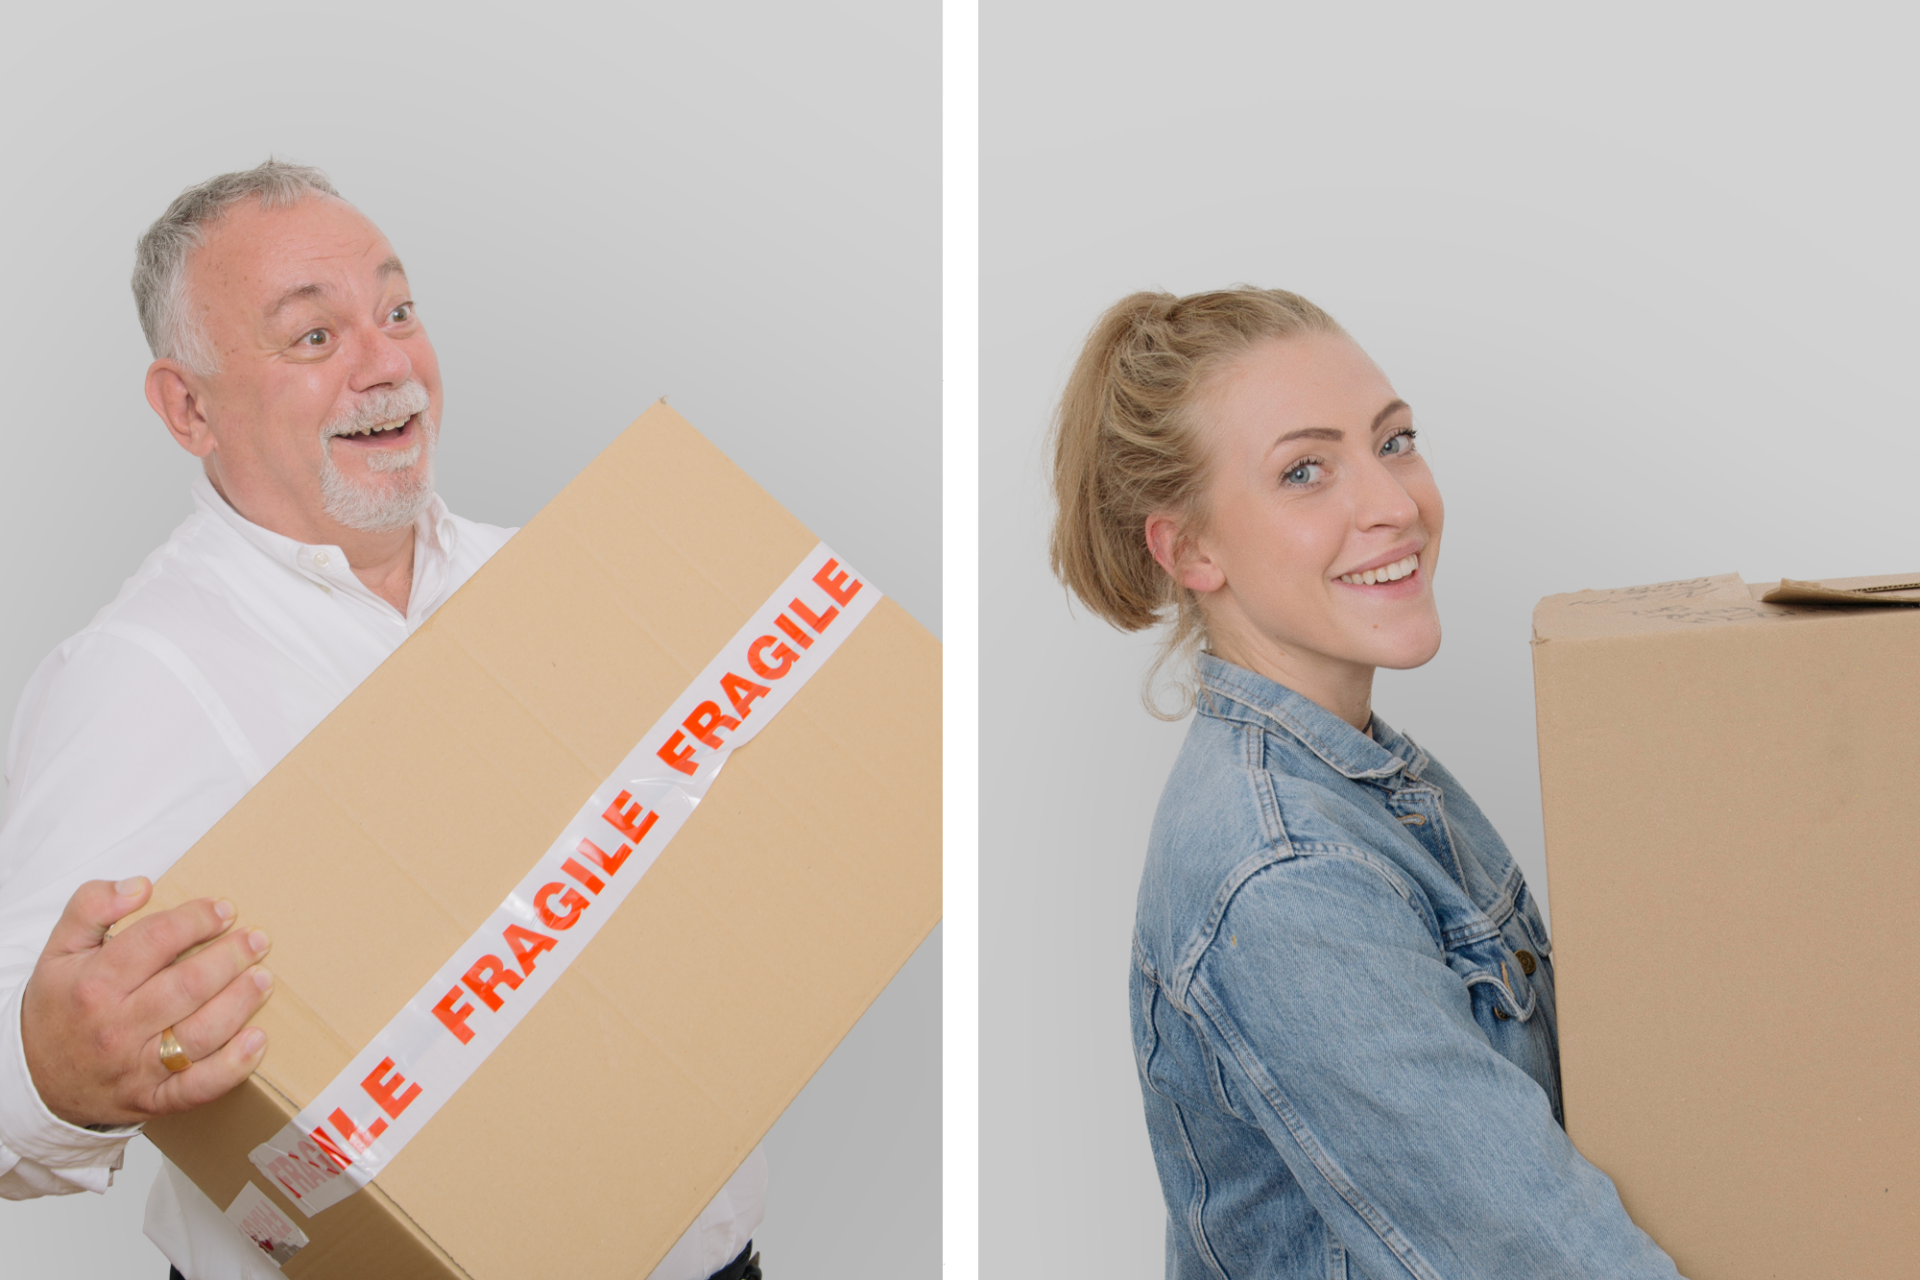 Split image of man and young woman carrying boxes, for moving day. Image for Heron Financial, Mortgage and Insurance Brokers. Graphic design by Barefaced Studios, design agency based in Islington, North London.